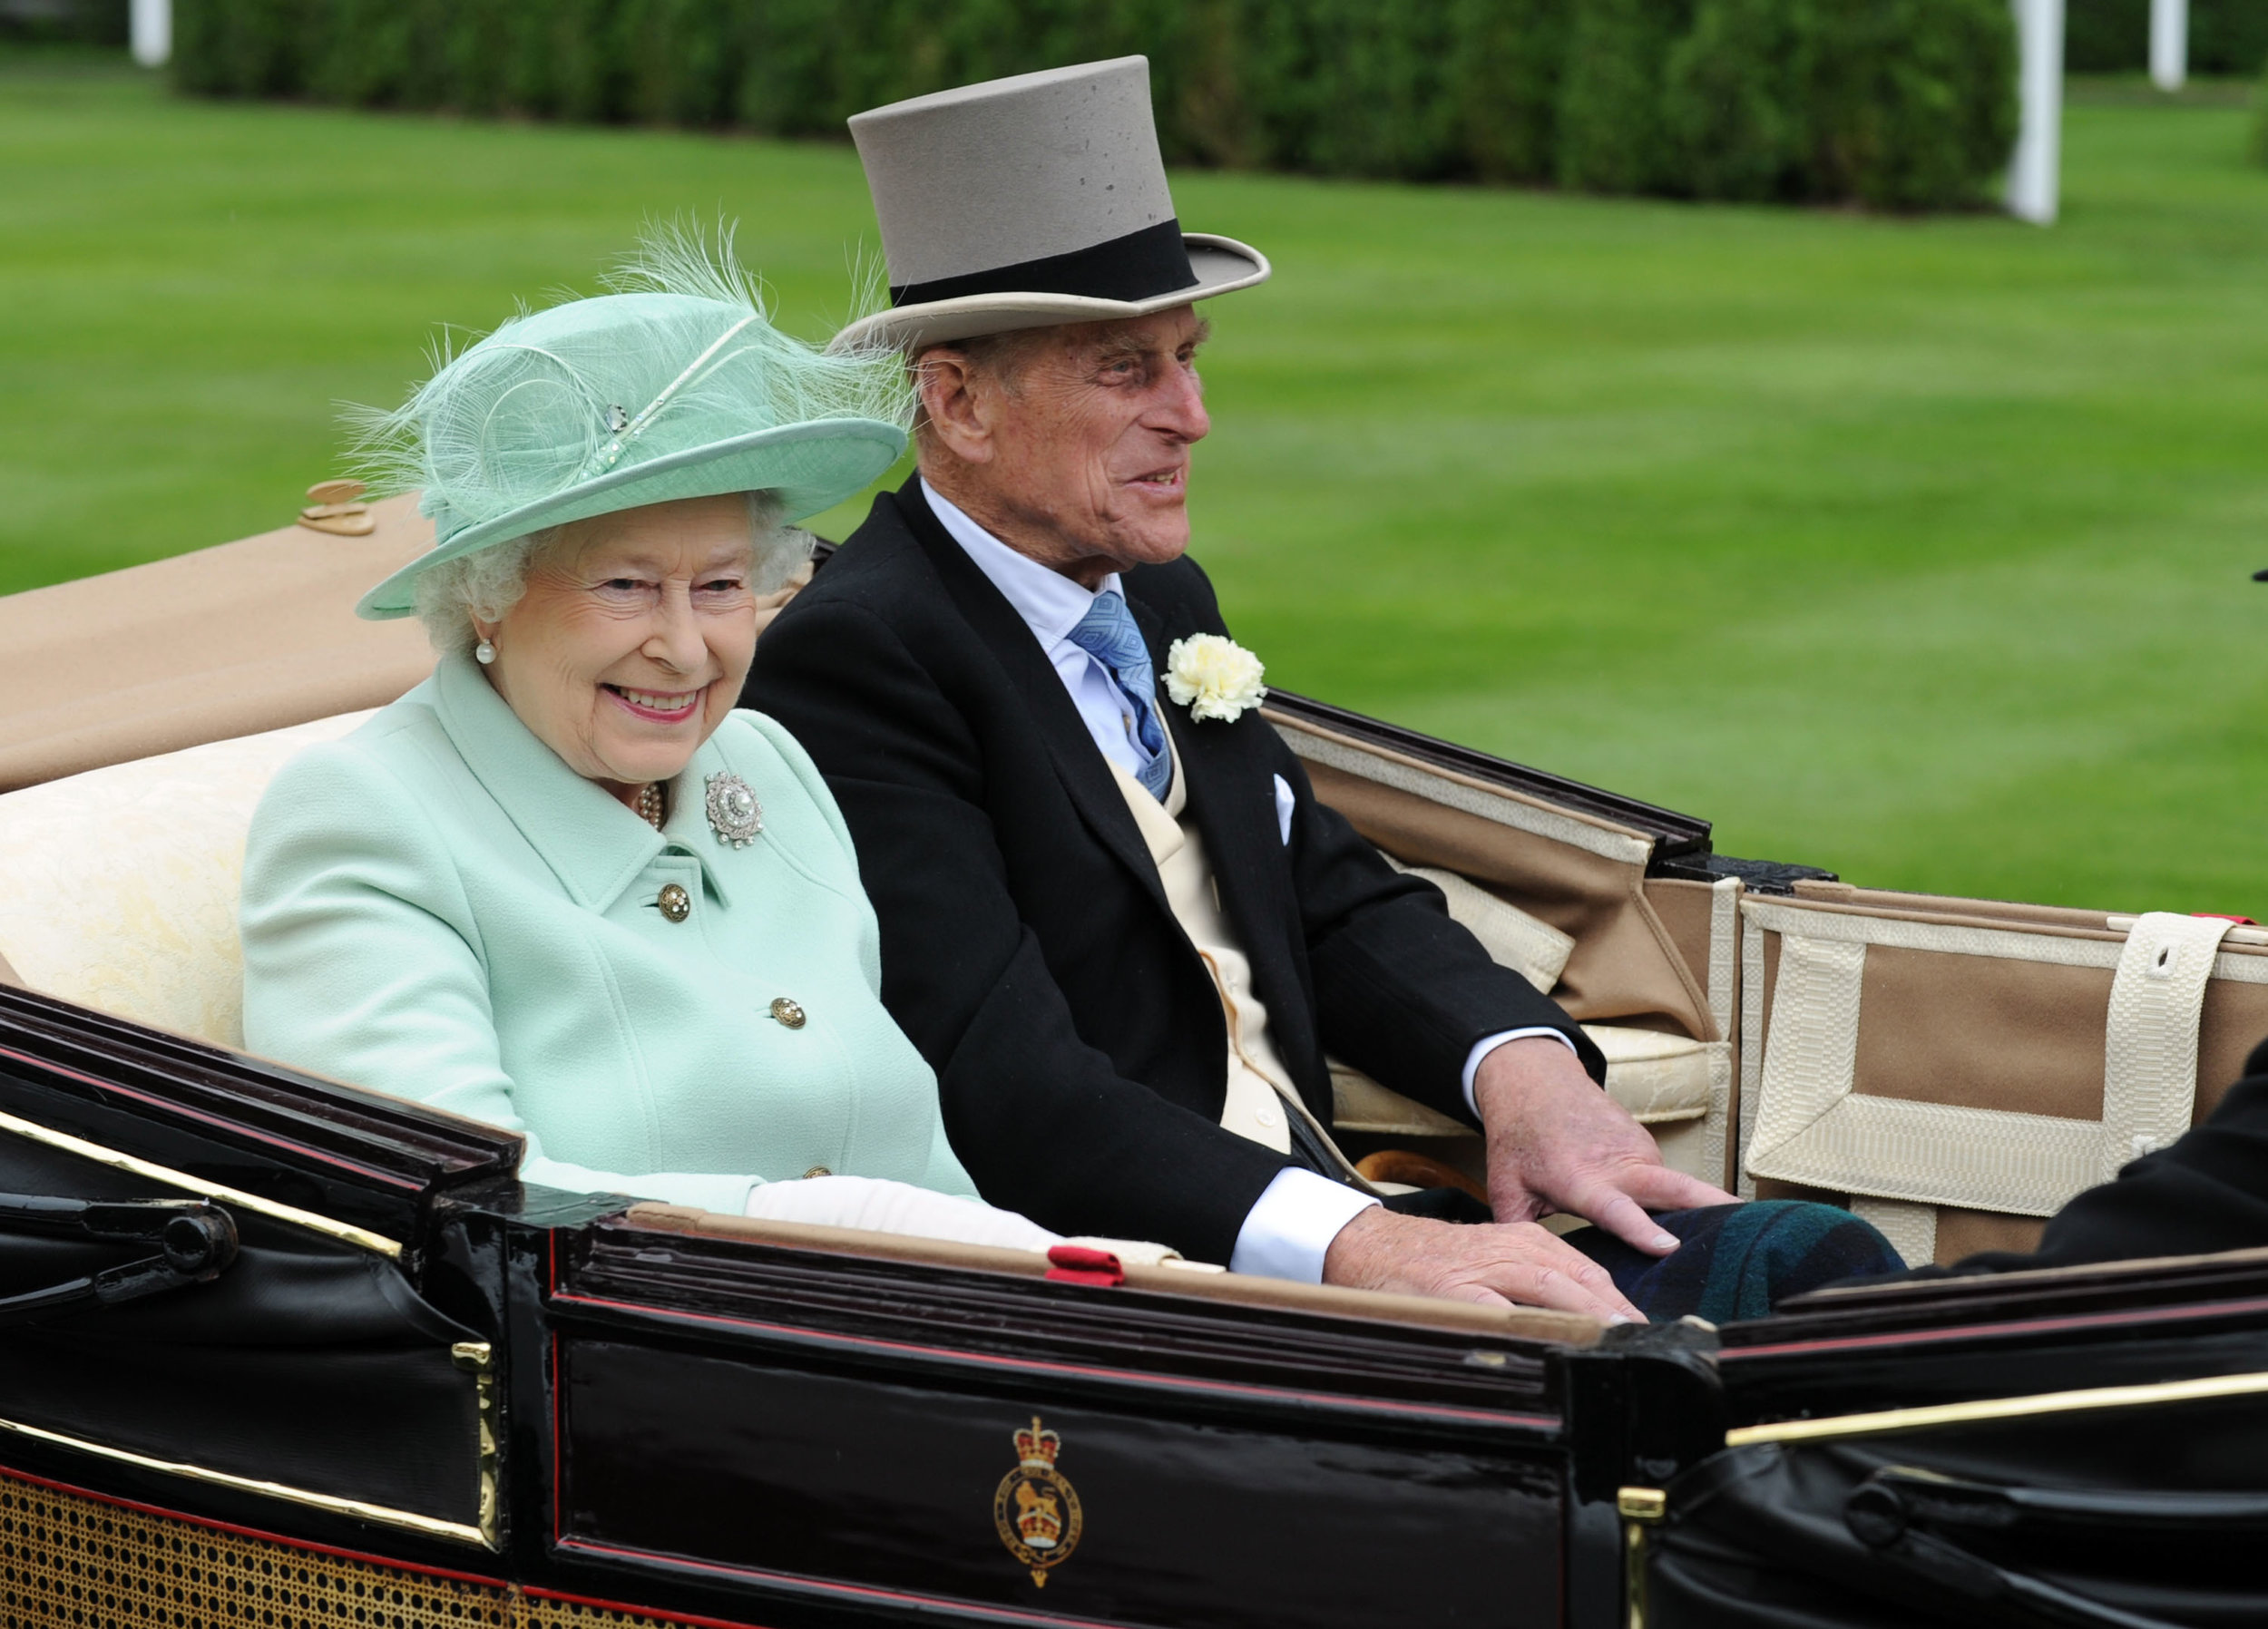 Her Majesty The Queen and The Duke of Edinburgh   Buckingham Palace London SW1A 1AA    Foto: Getty Images